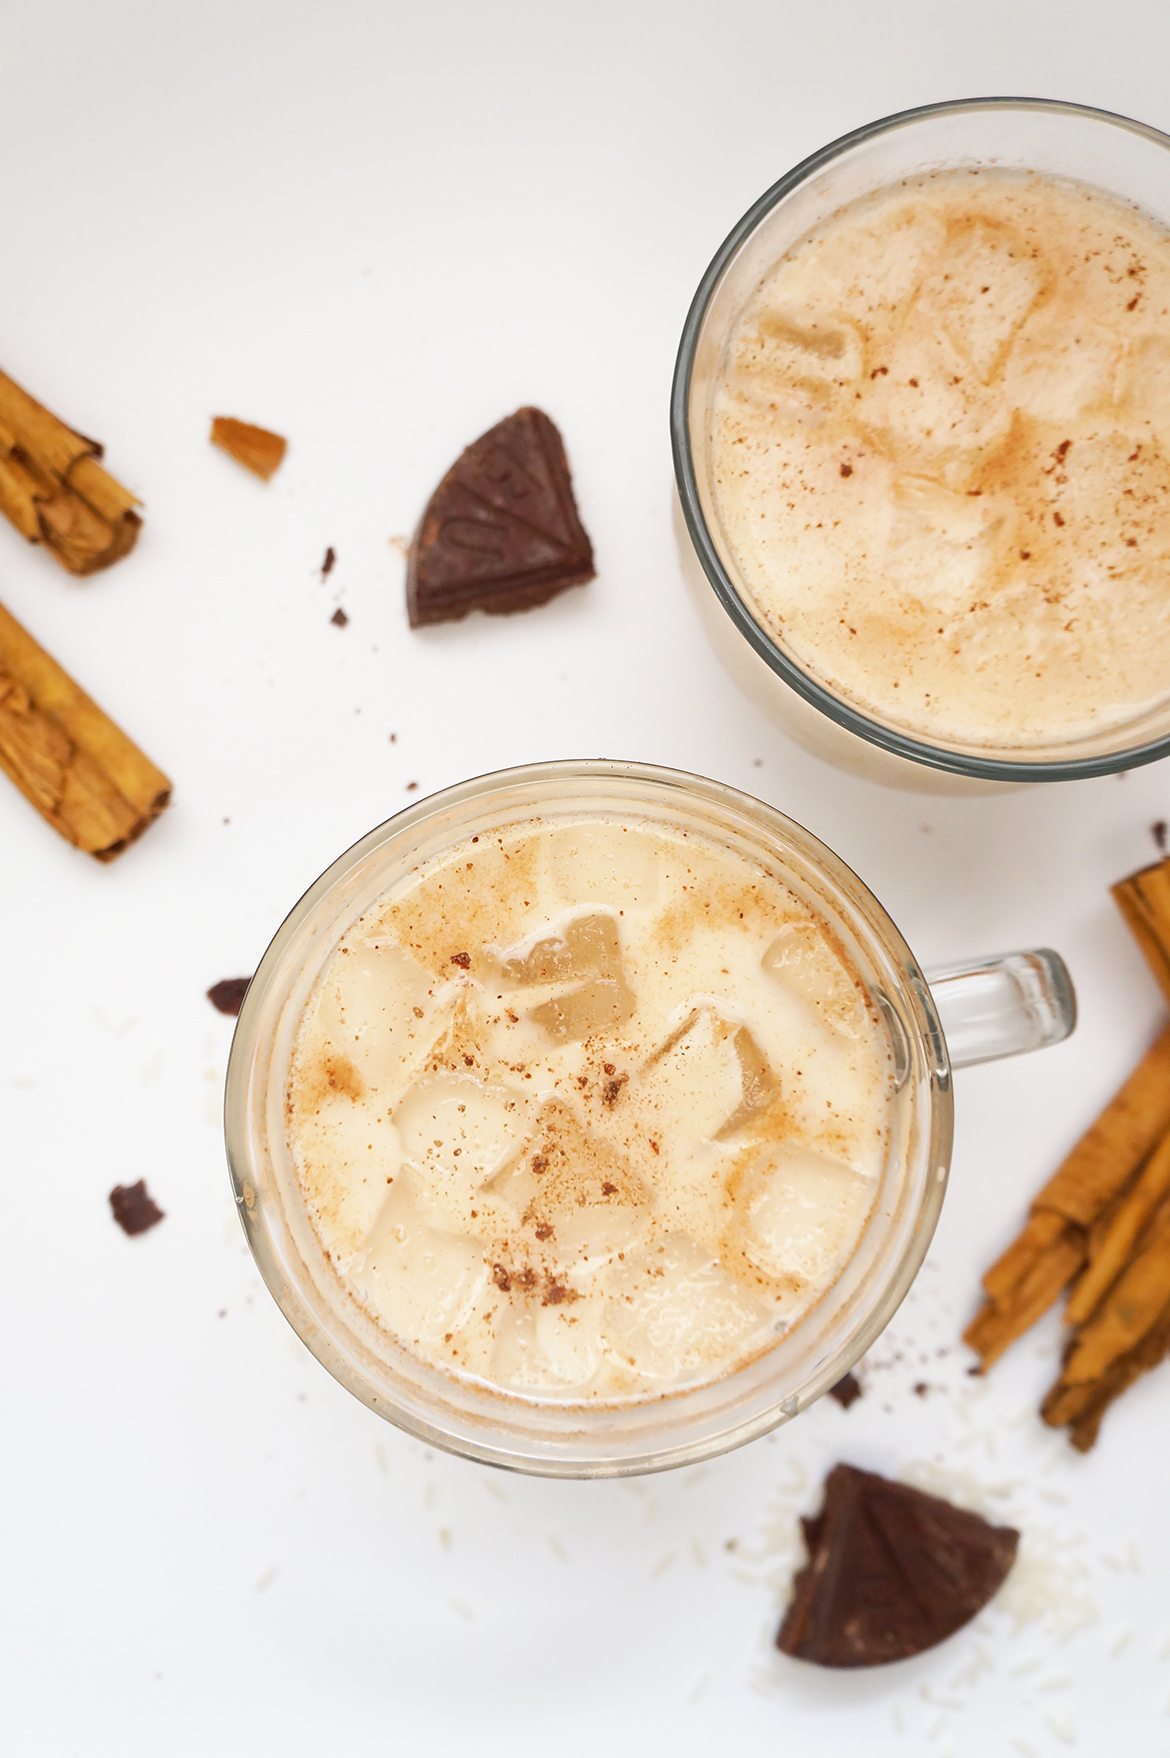 Andrea Fenise Memphis Fashion Blogger and Memphis Food Blogger shares how to make horchata